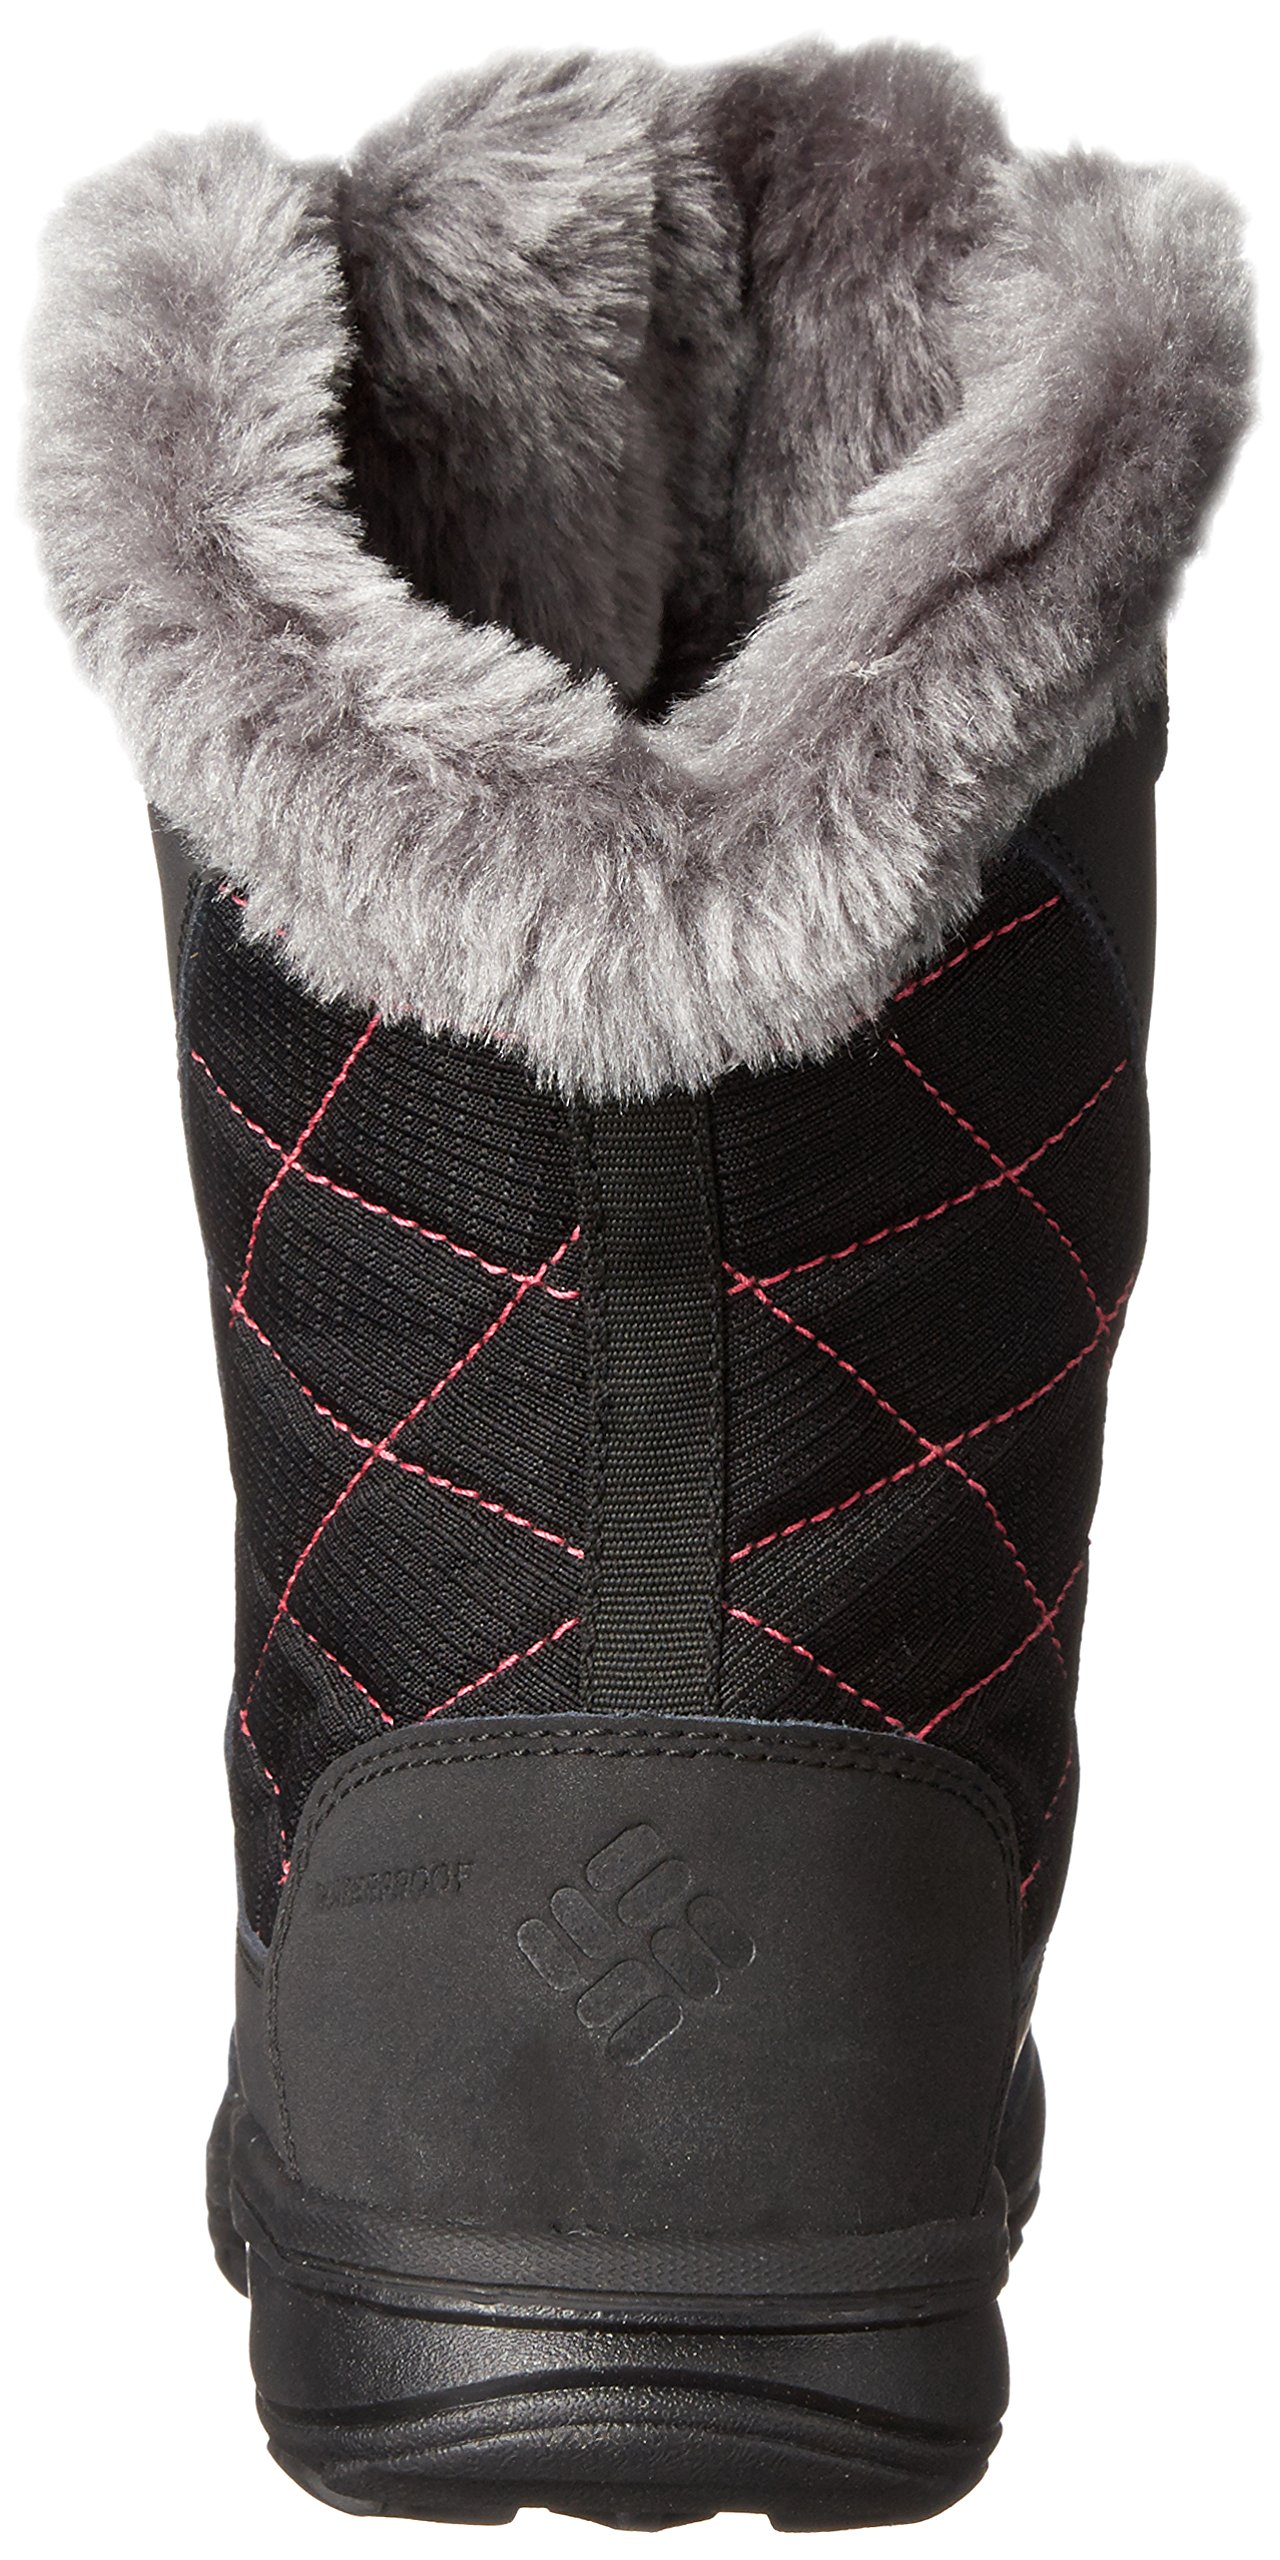 Columbia Youth Ice Maiden Lace Winter Boot (Little Kid/Big Kid), Black, 1 M US Little Kid by Columbia (Image #2)